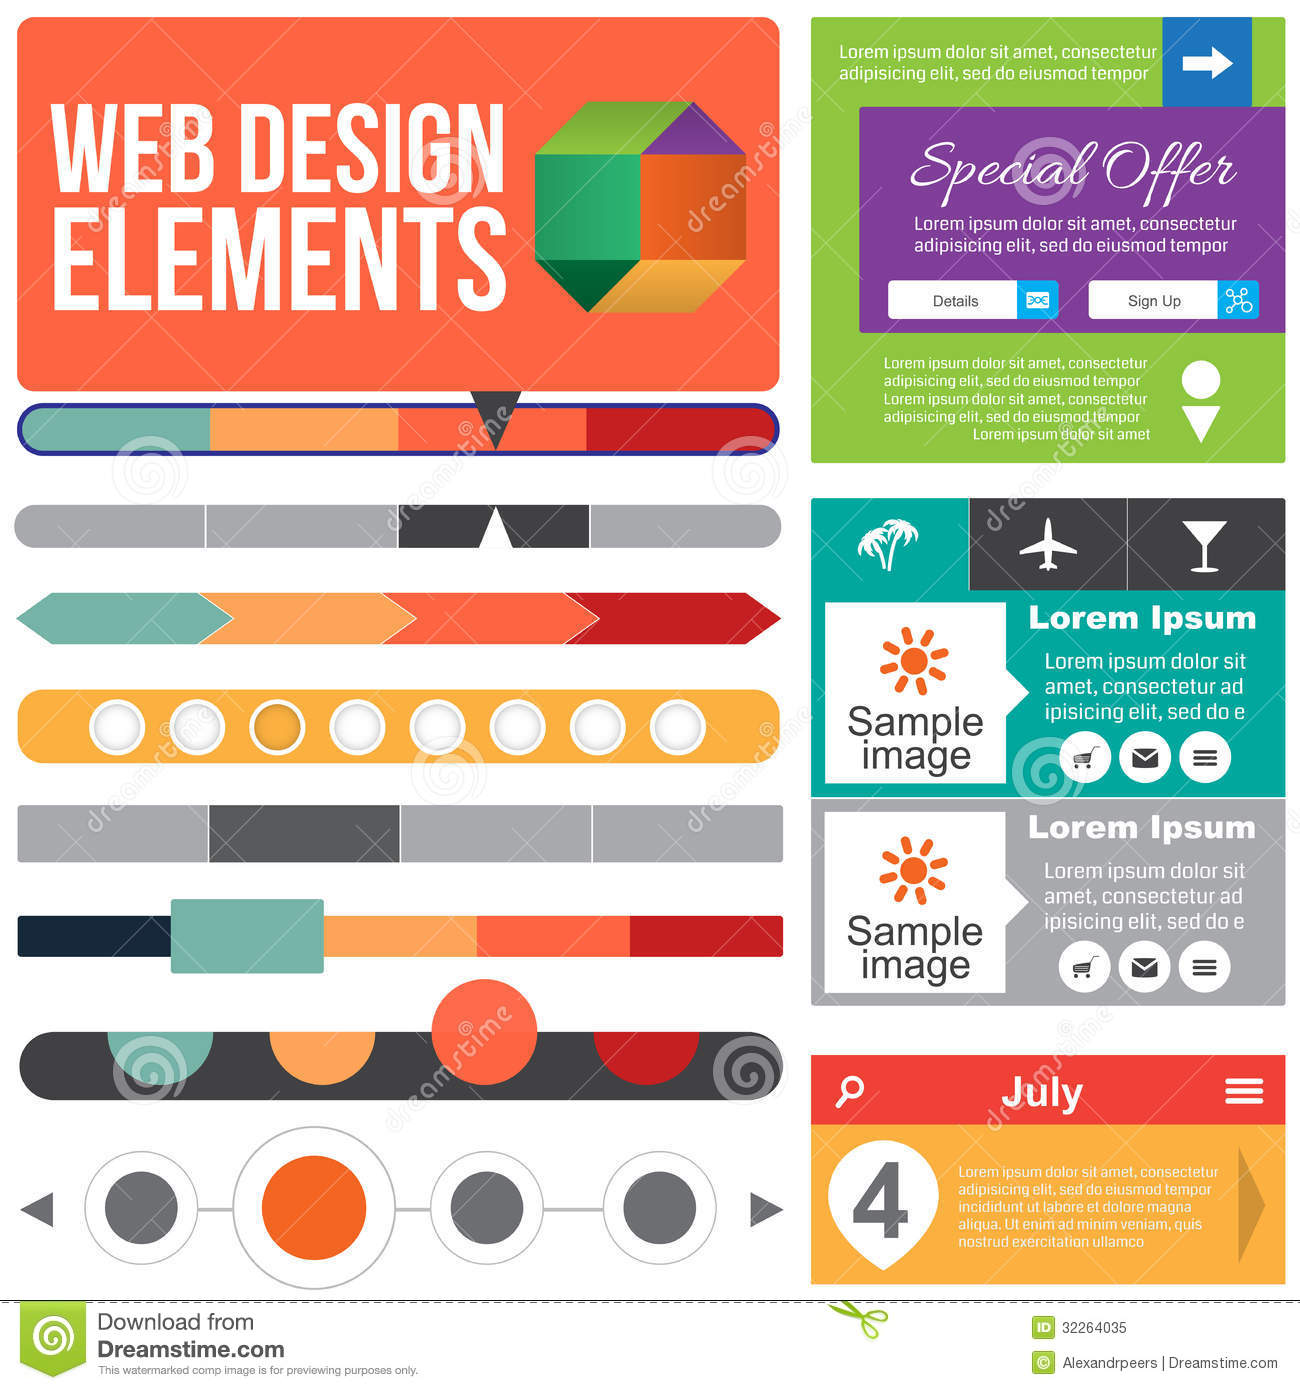 13 Website Design Elements Images